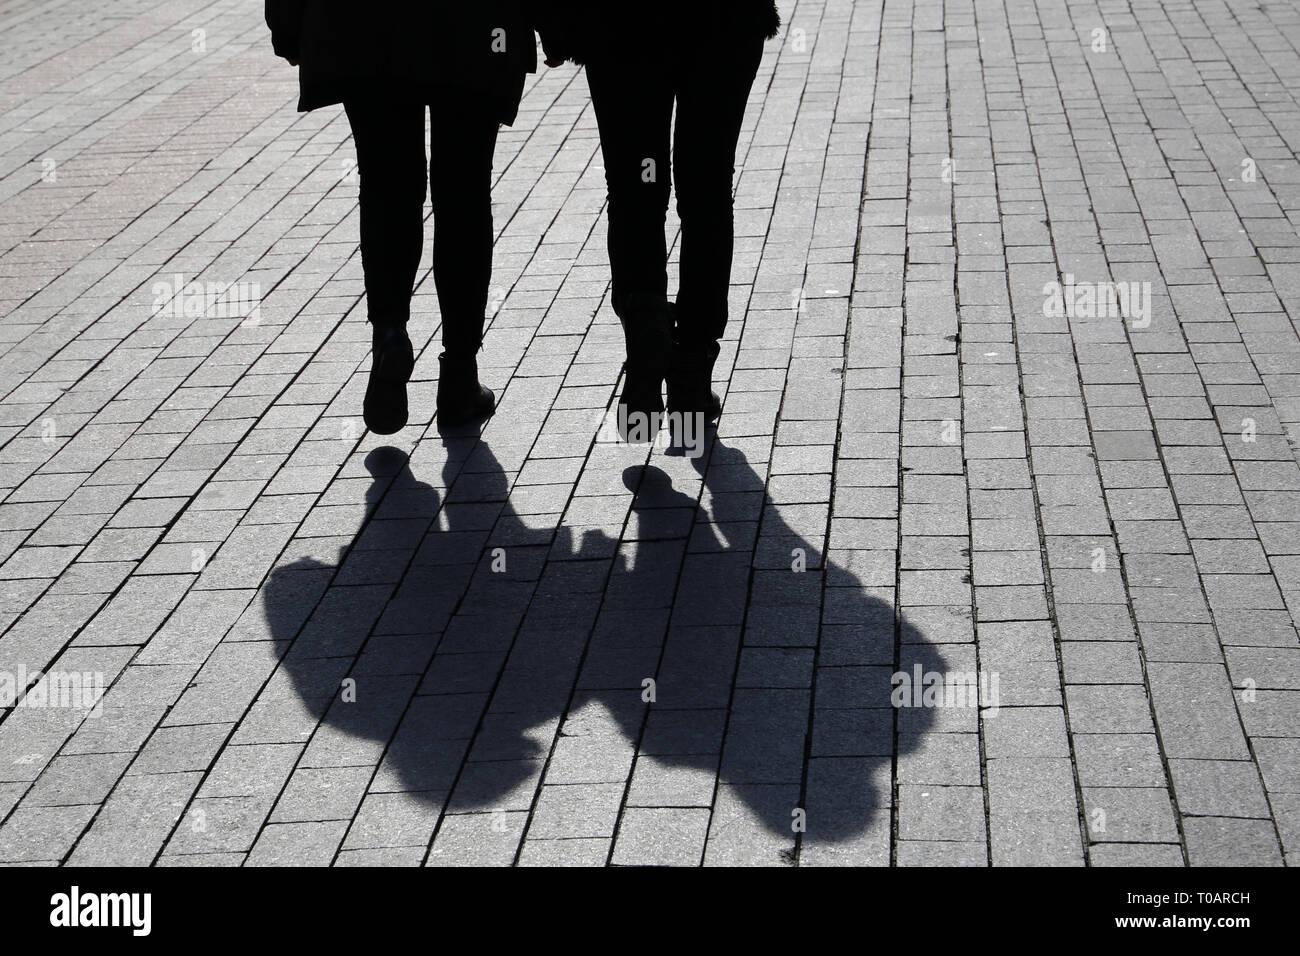 Spring Silhouettes And Shadows >> Silhouettes And Shadows Of Two Women Walking Down The Street